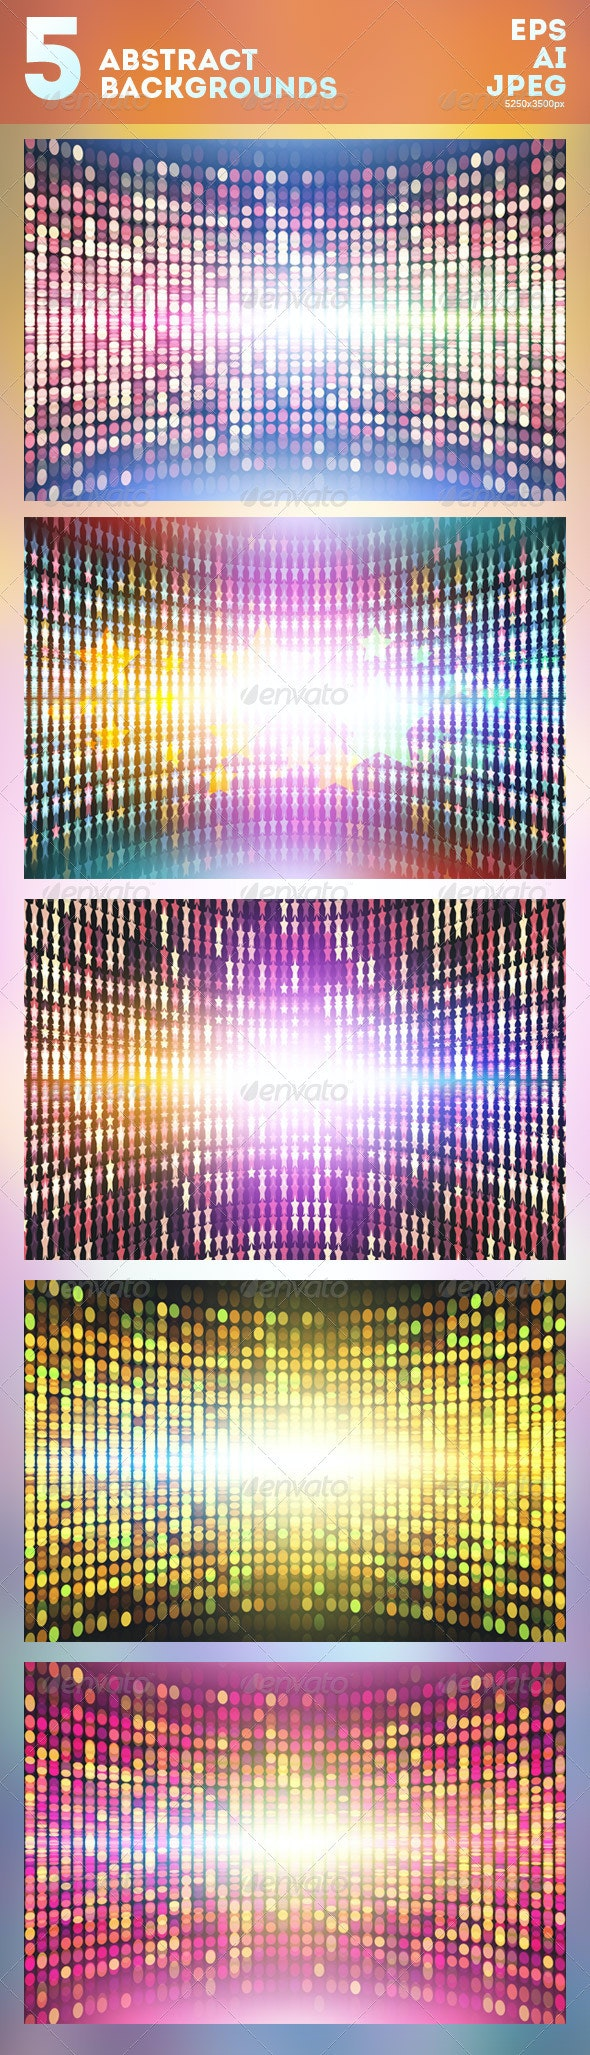 5 Abstract Vector Backgrounds - Backgrounds Decorative